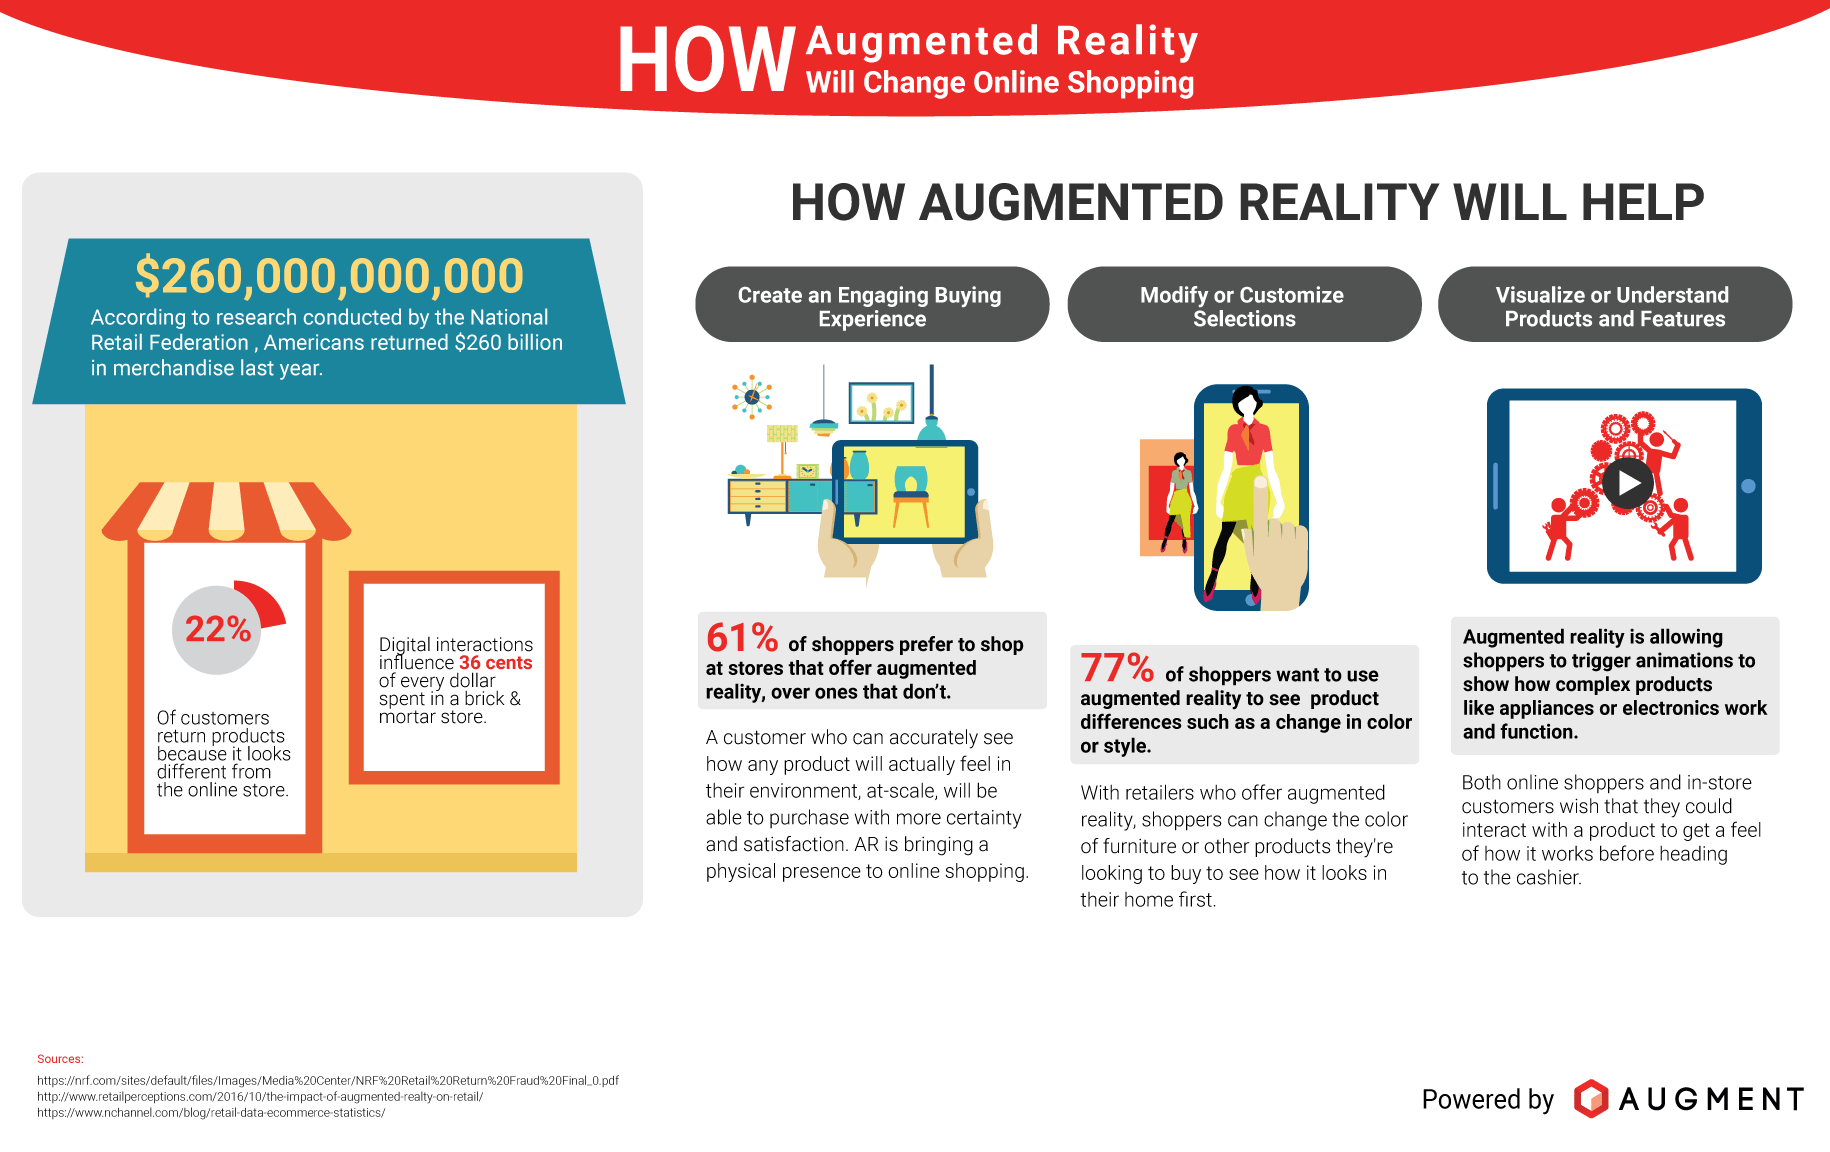 AR in Retail - Augment Infographic